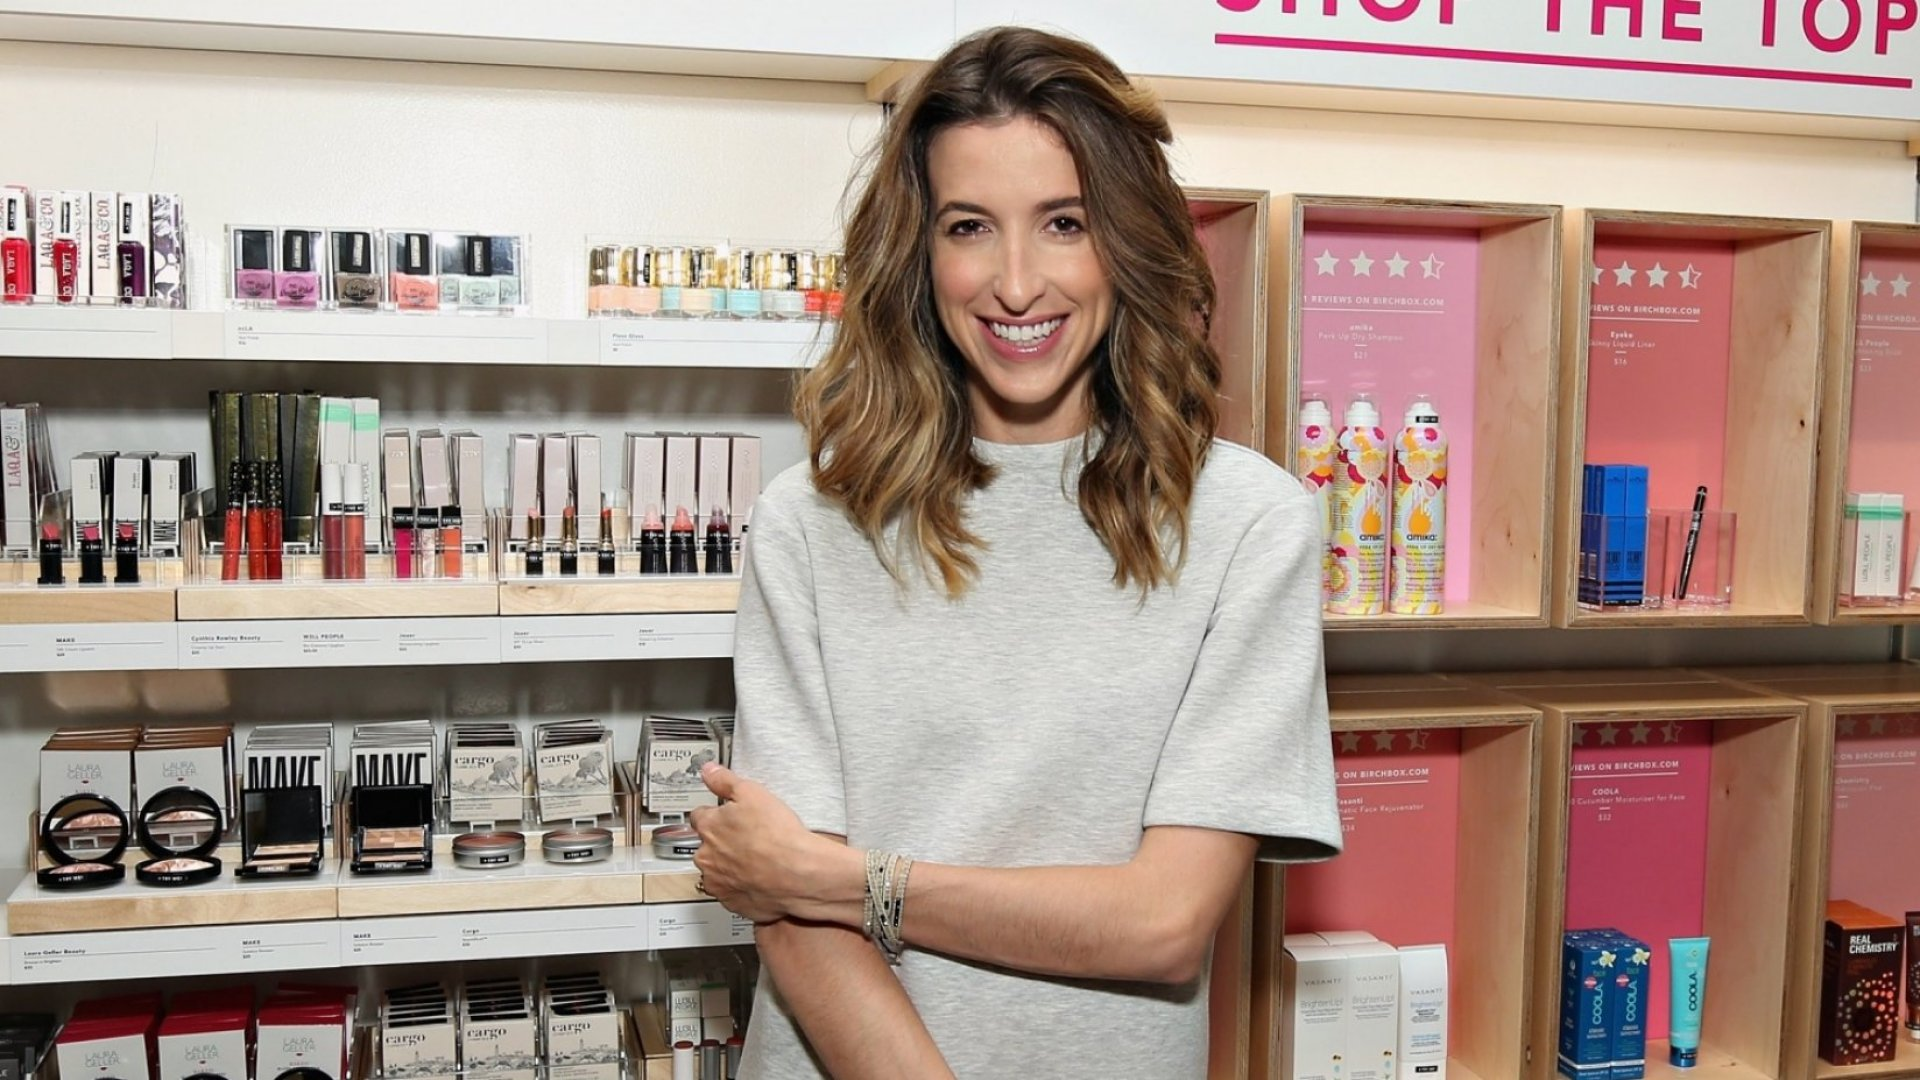 Katia Beauchamp, CEO and co-founder of Birchbox.